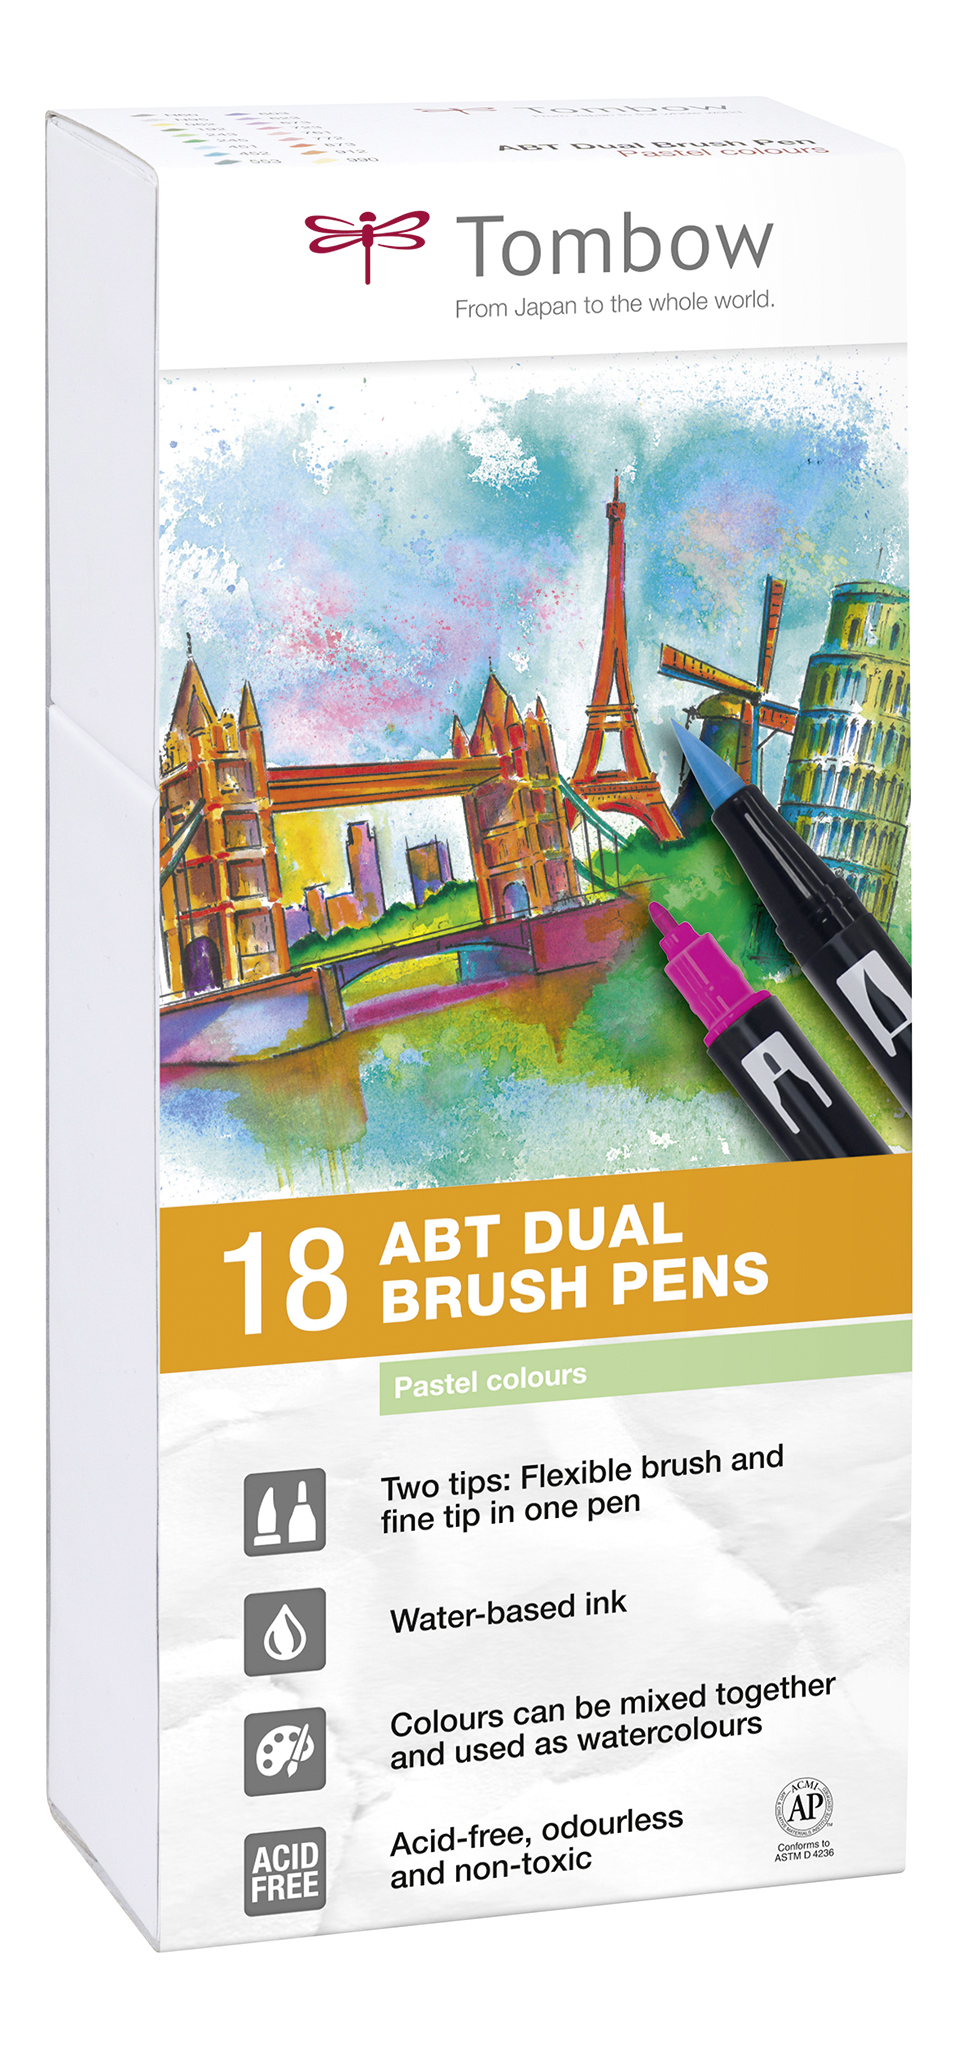 ABT Dual Brush Pen Pastel clrs PK18